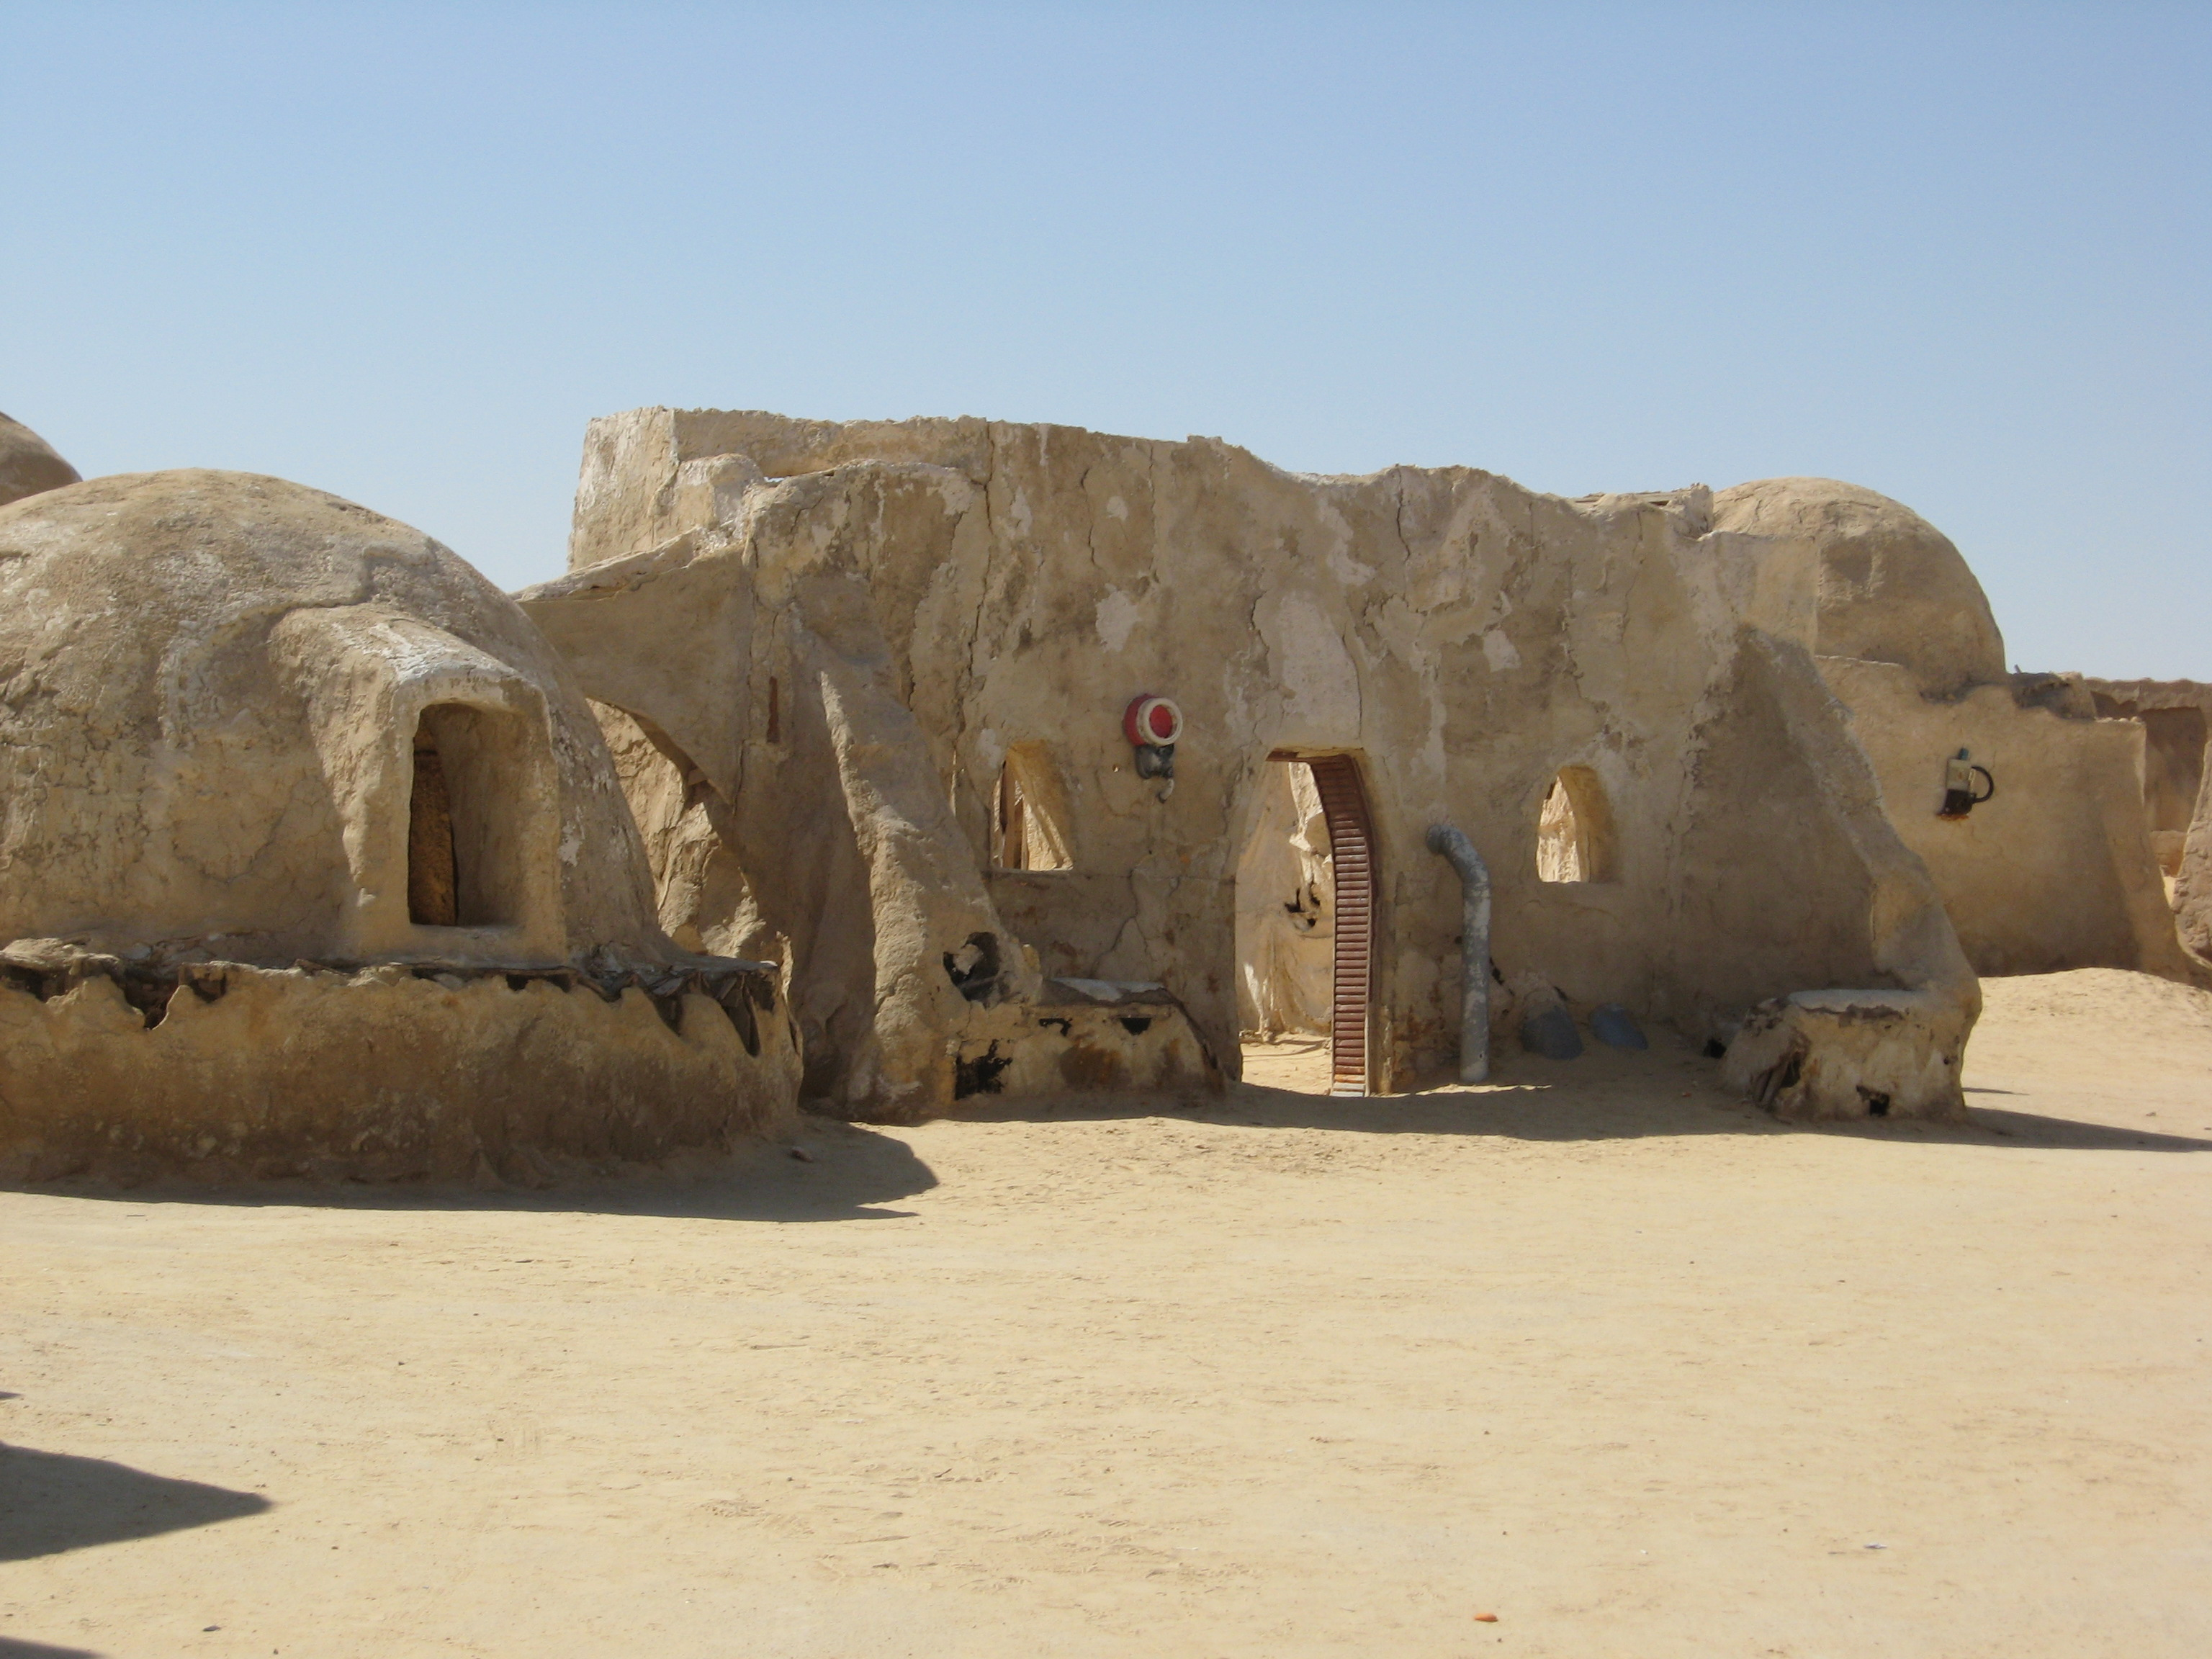 tatooine_star_wars_movie_set14_by_jkno4u